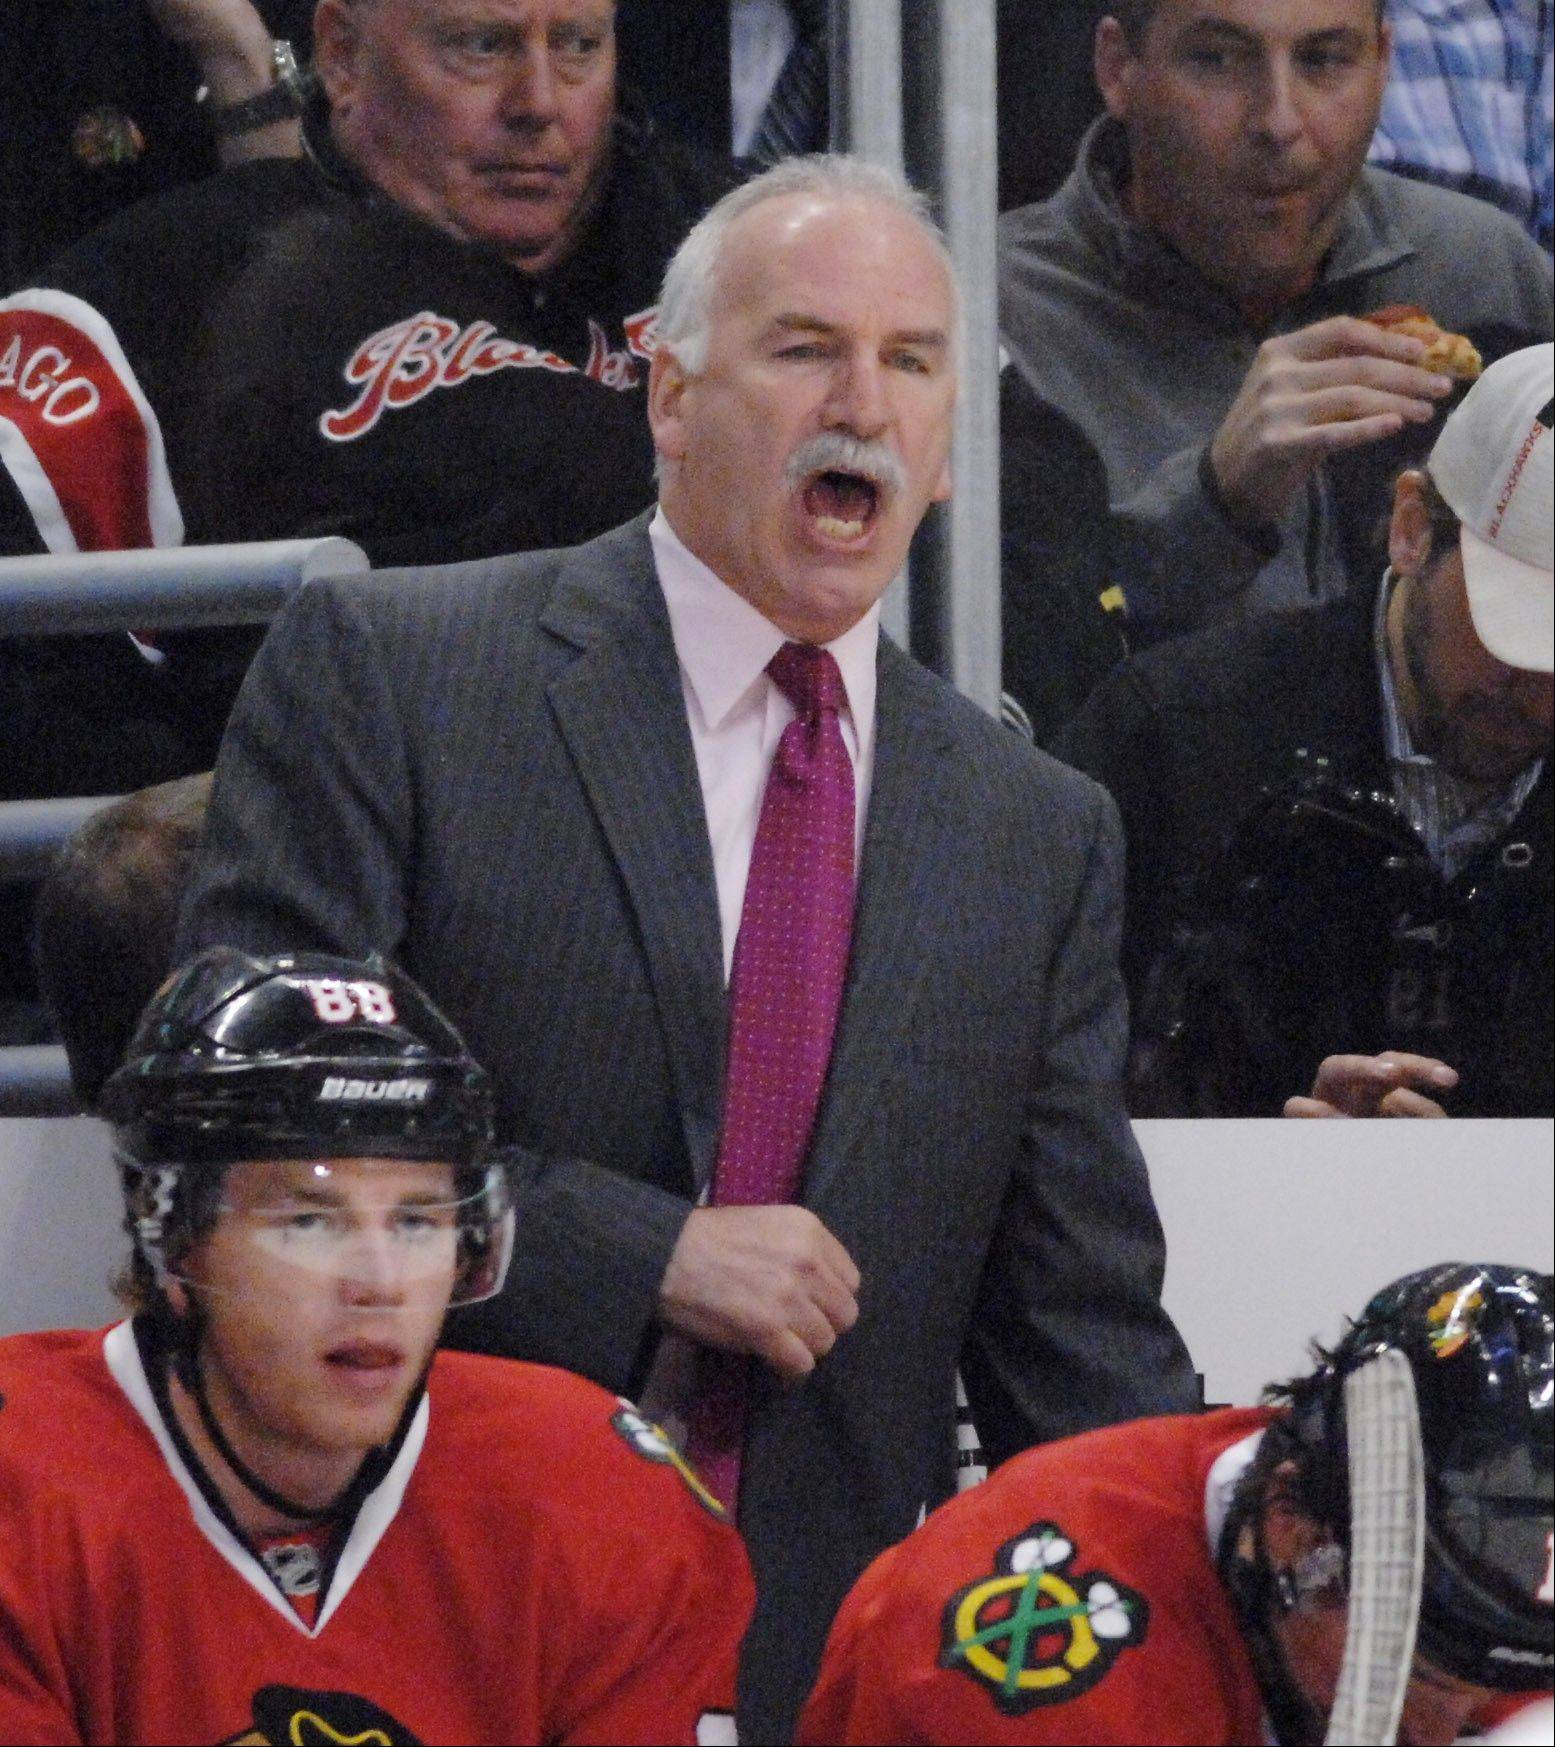 Blackhawks coach Joel Quenneville continues to believe his team can play a puck-possession style built around a great offense. That�s contrary to what most NHL teams are doing.